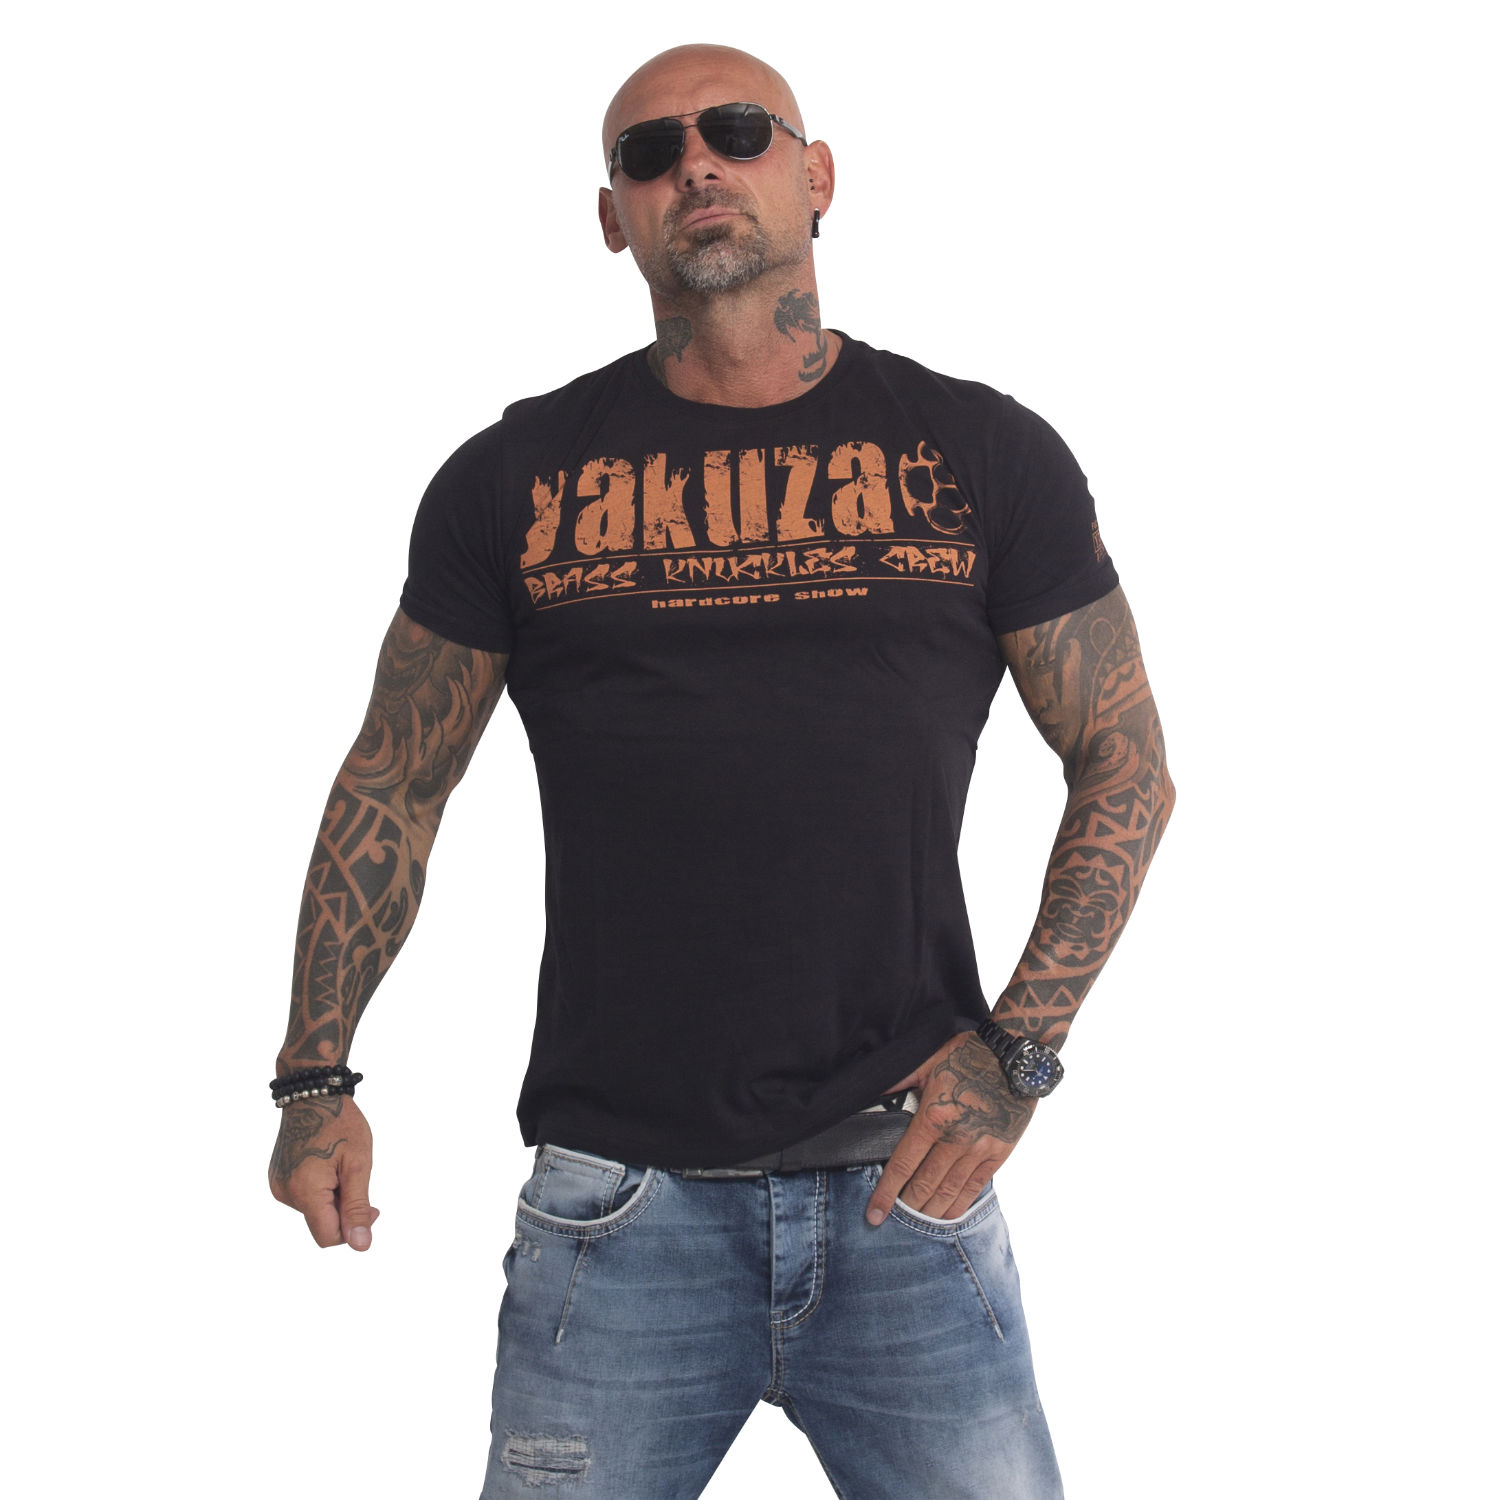 Yakuza, Brass Knuckles Crew T-Shirt, TSB503 BLACK M